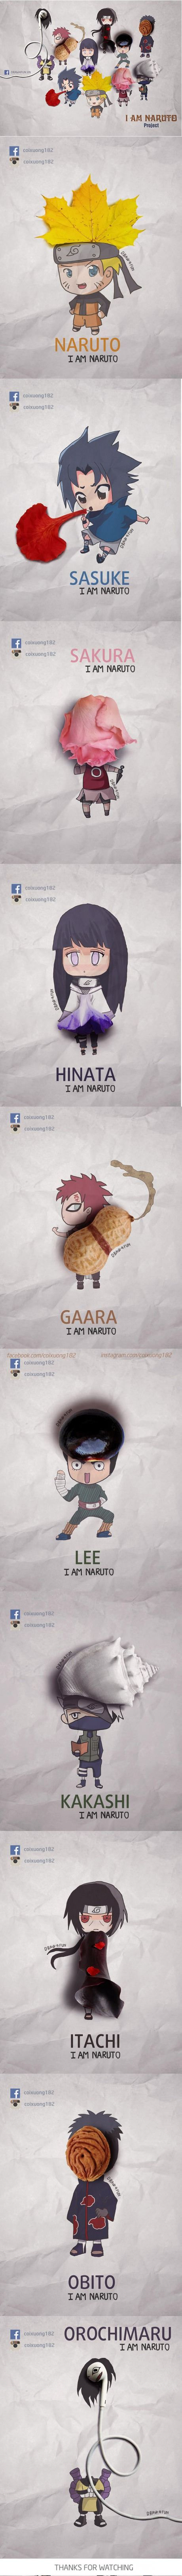 Amazing Naruto's Character by Nguyen Quang Huy..... This is adorable!